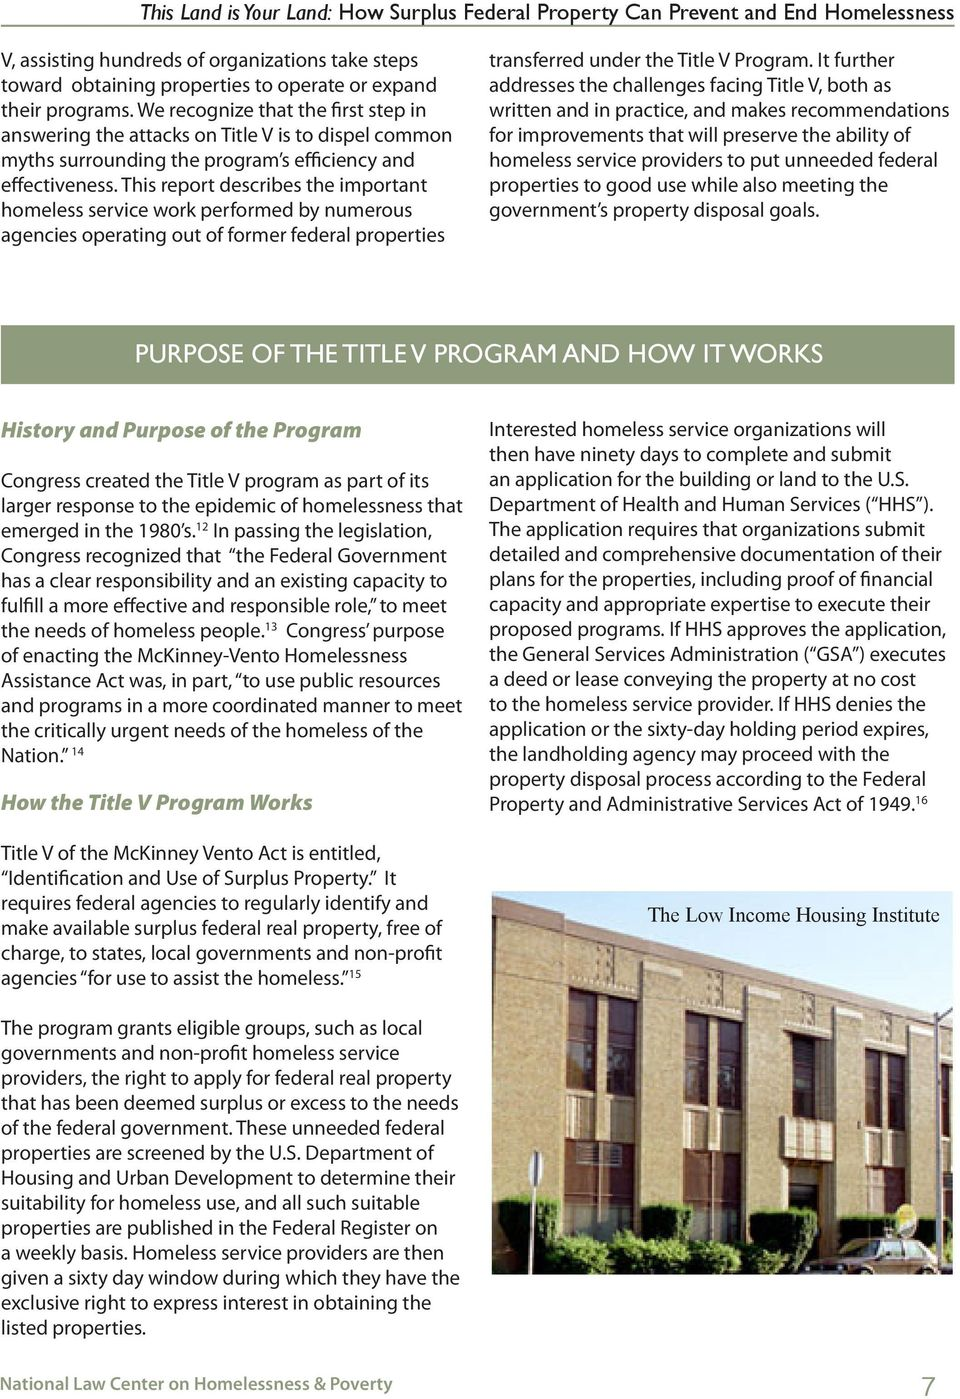 This report describes the important homeless service work performed by numerous agencies operating out of former federal properties transferred under the Title V Program.